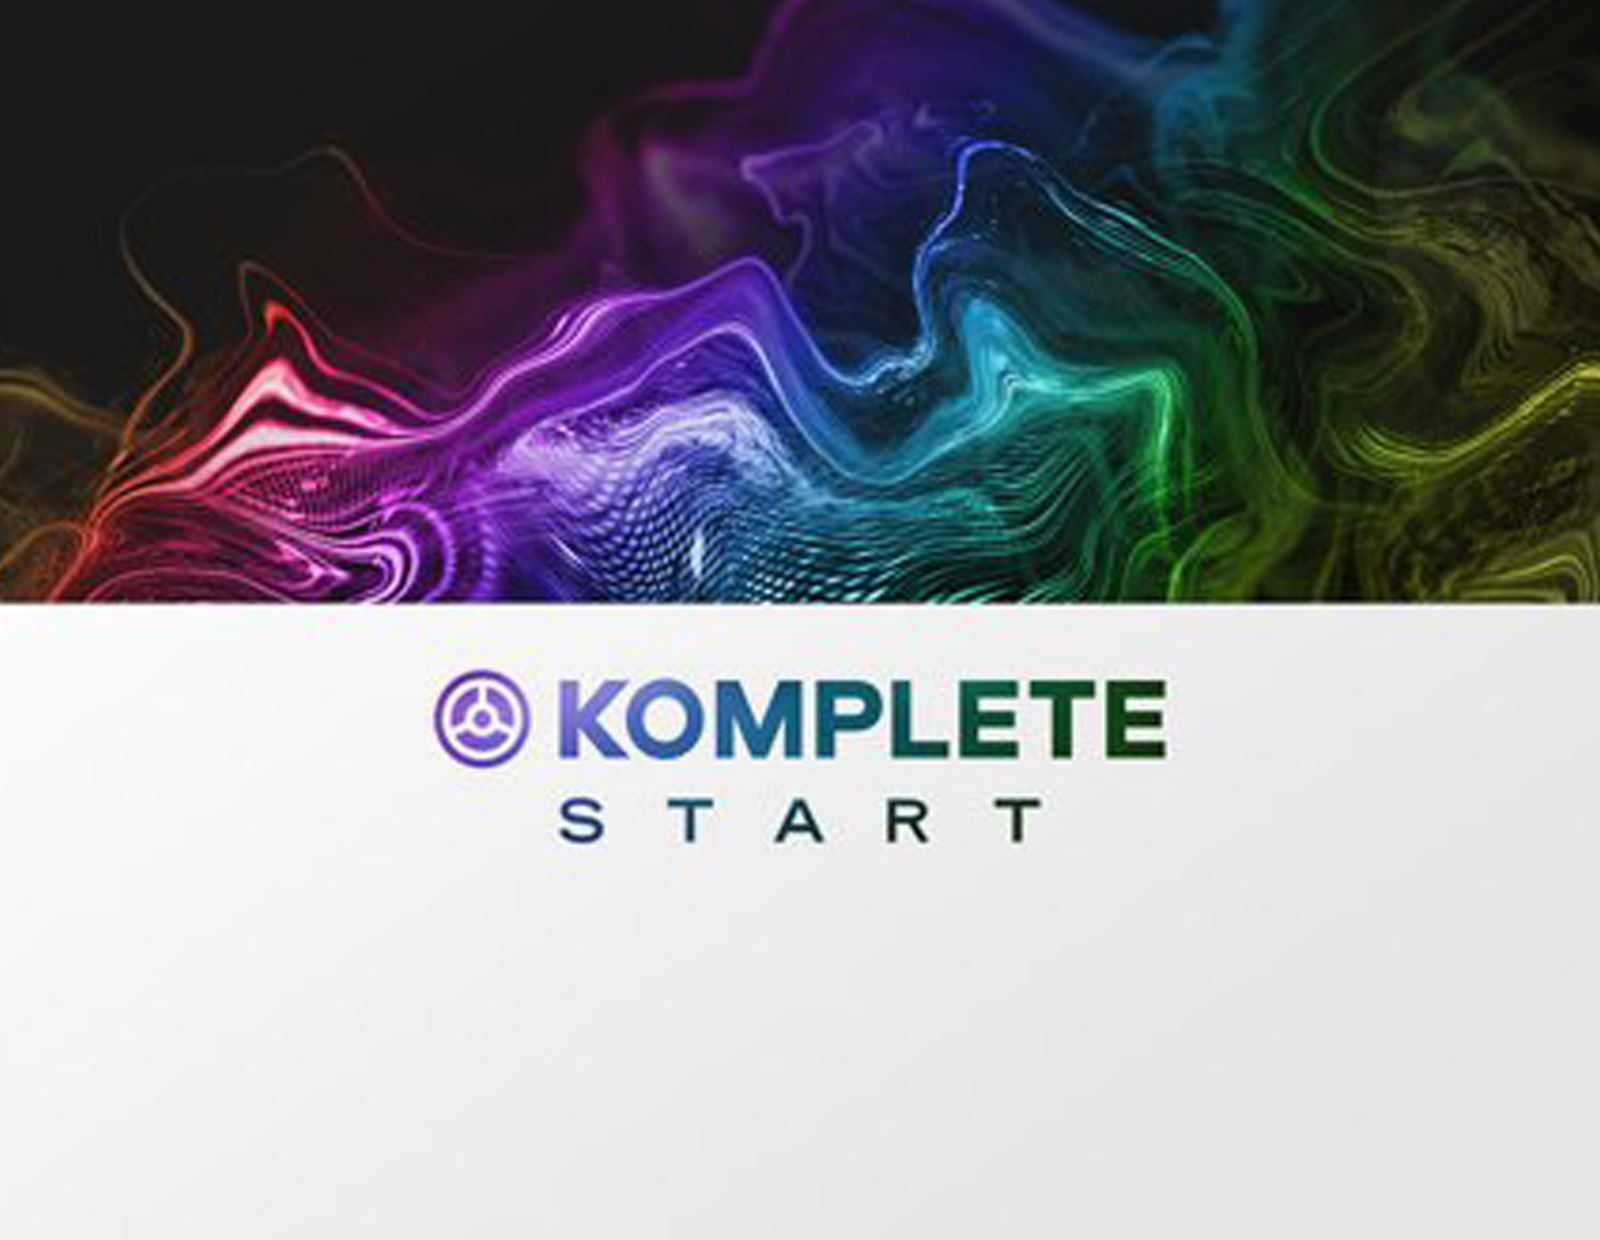 Komplete Start: Your Free Ticket Into The World of Native Instruments